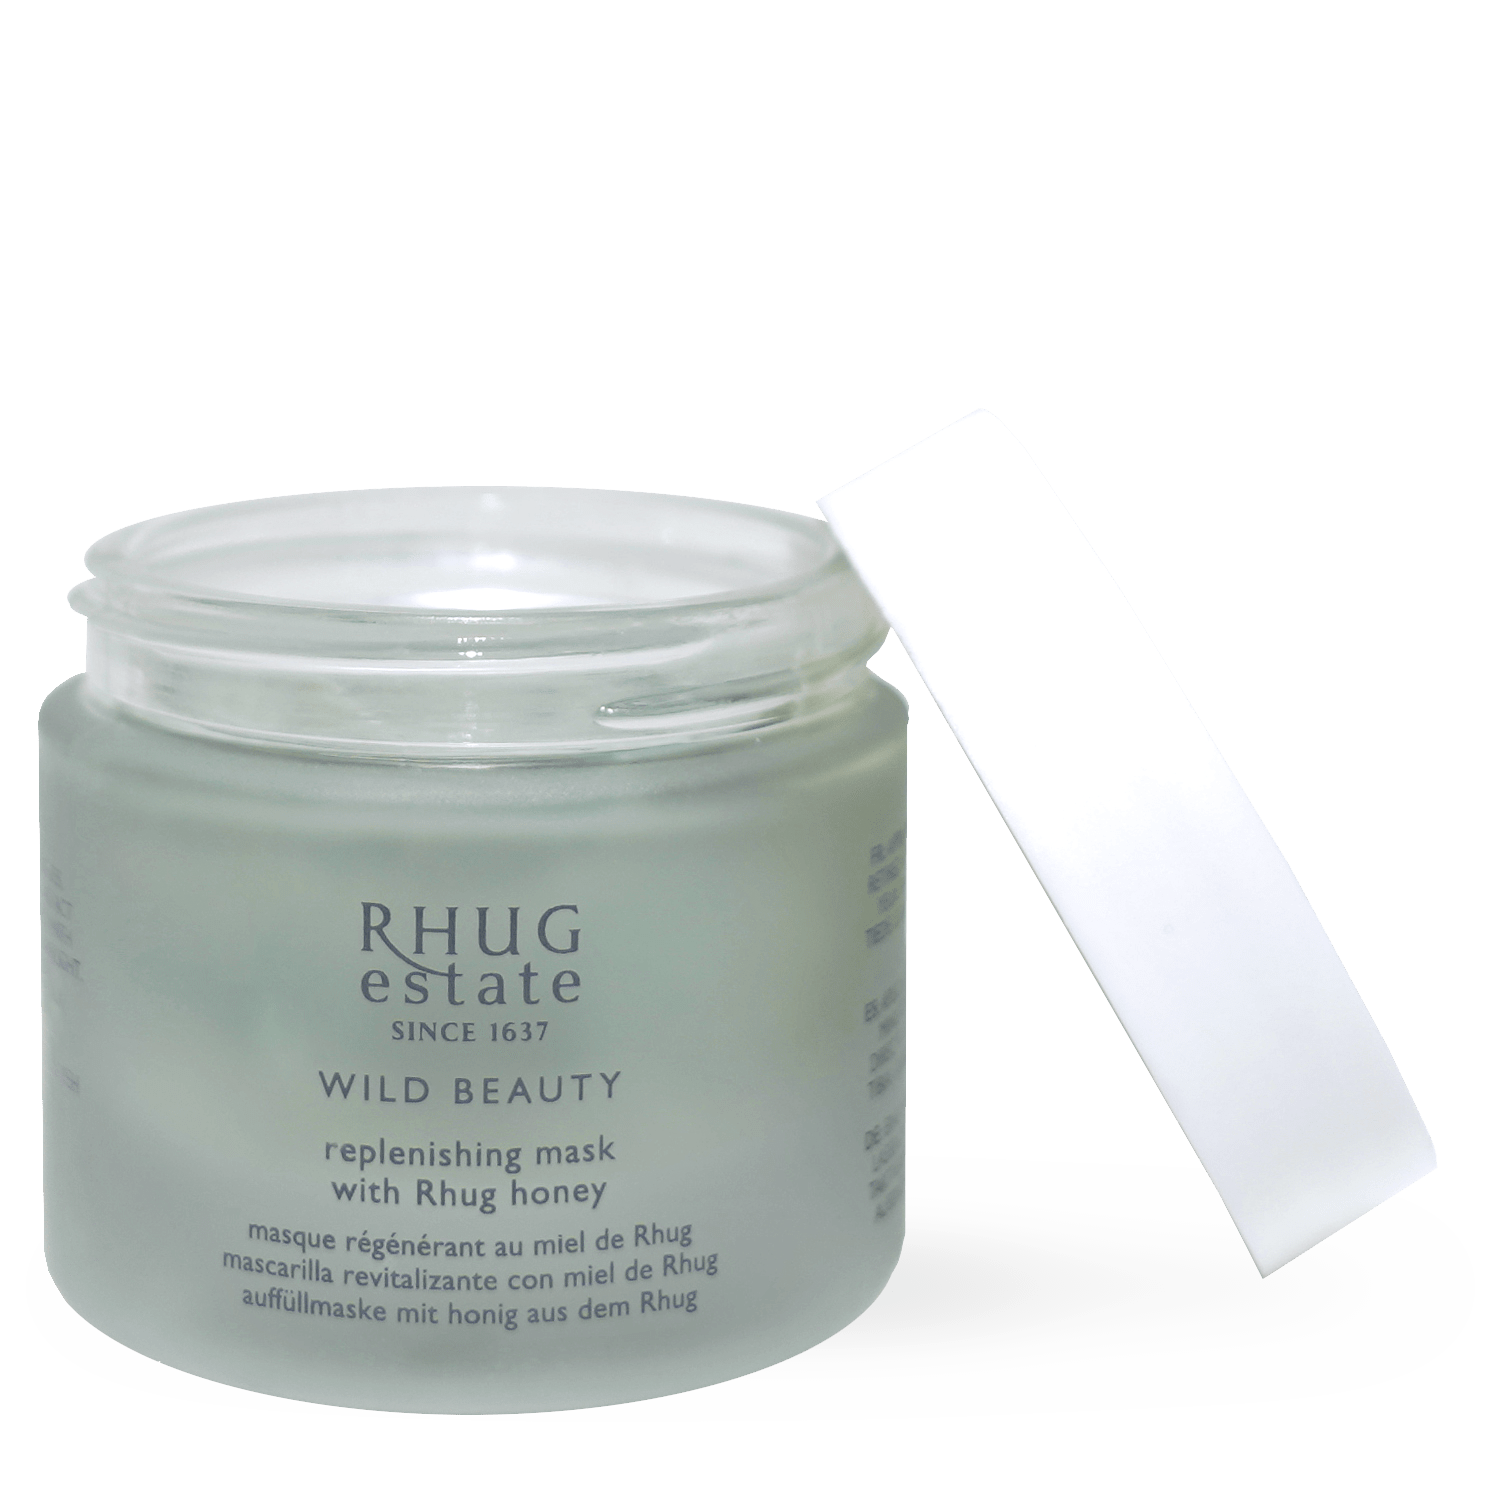 Replenishing Mask with Rhug Honey by Rhug Wild Beauty